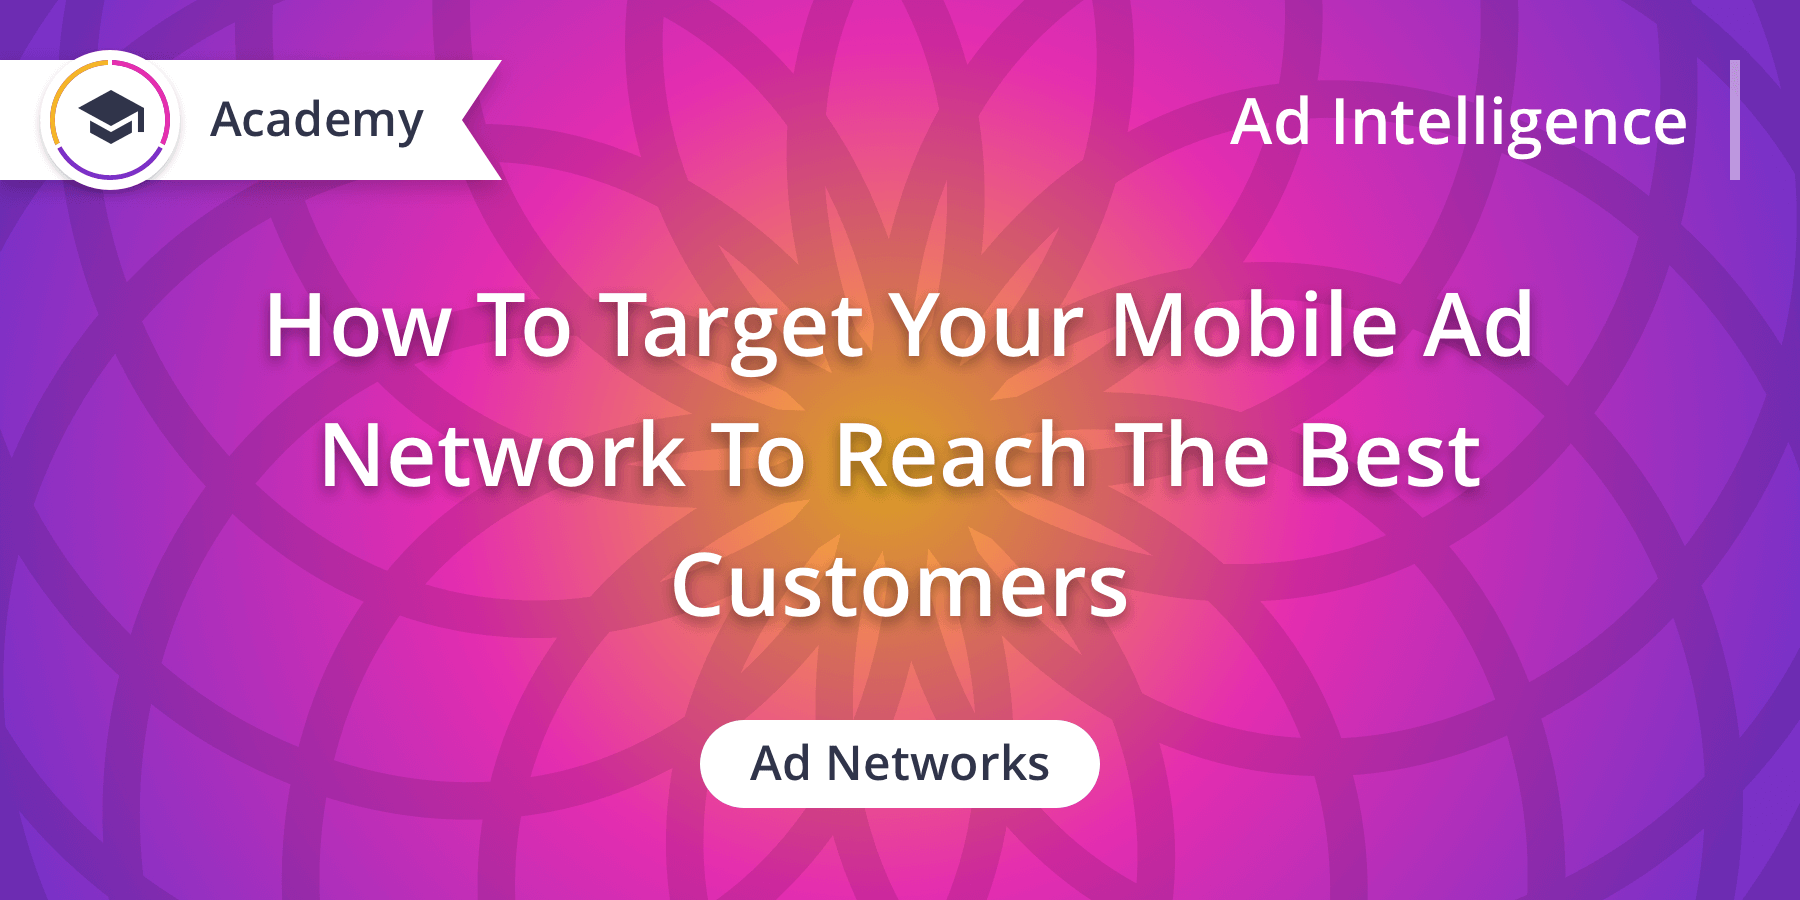 How to Target Your Mobile Ad Network to Reach the Best Customers